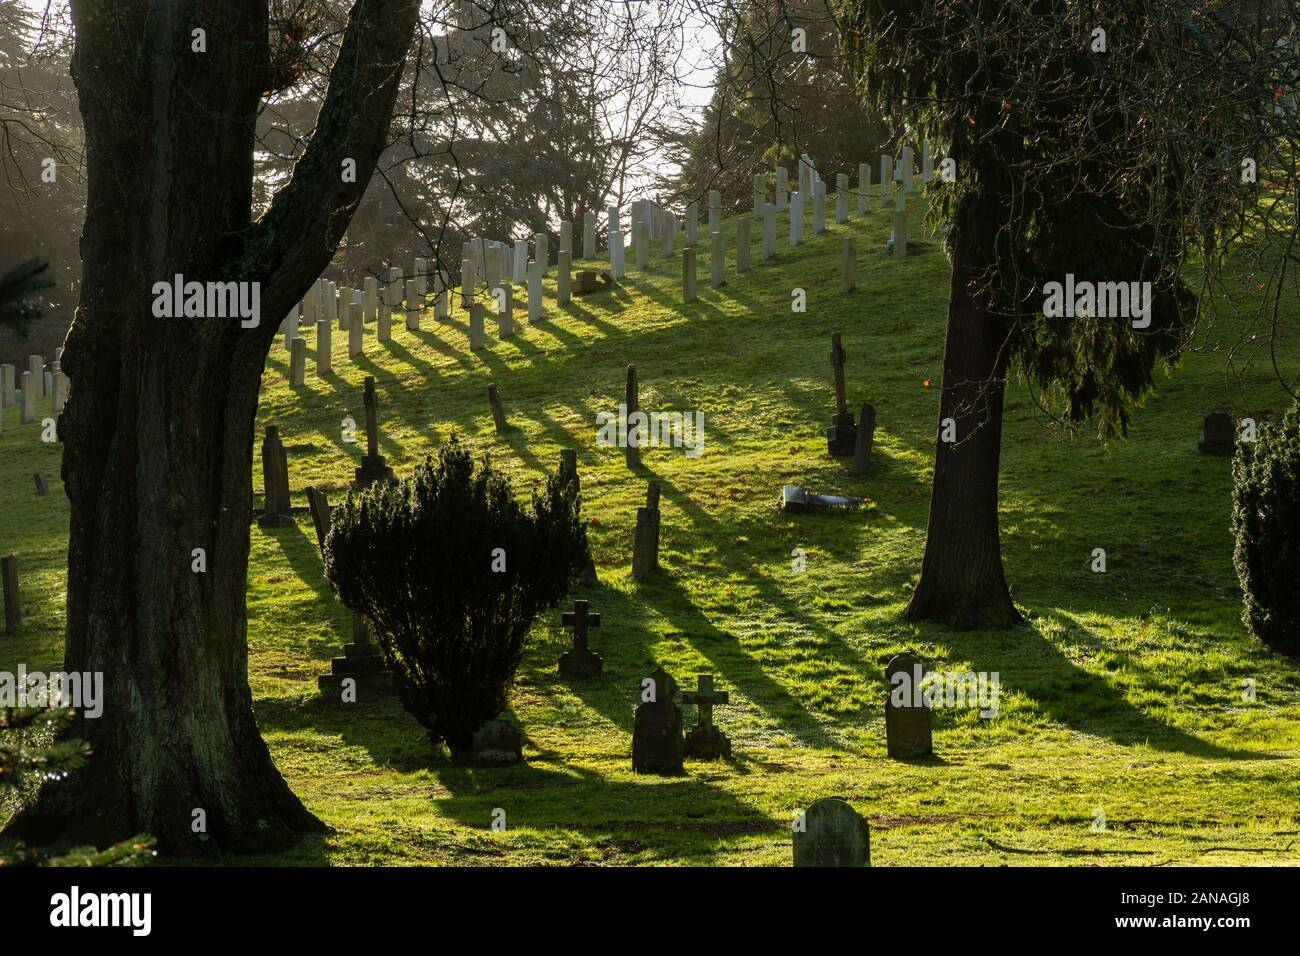 Aldershot Military Cemetery with graves of british and commonwealth servicemen and women, Hampshire, UK Stock Photo